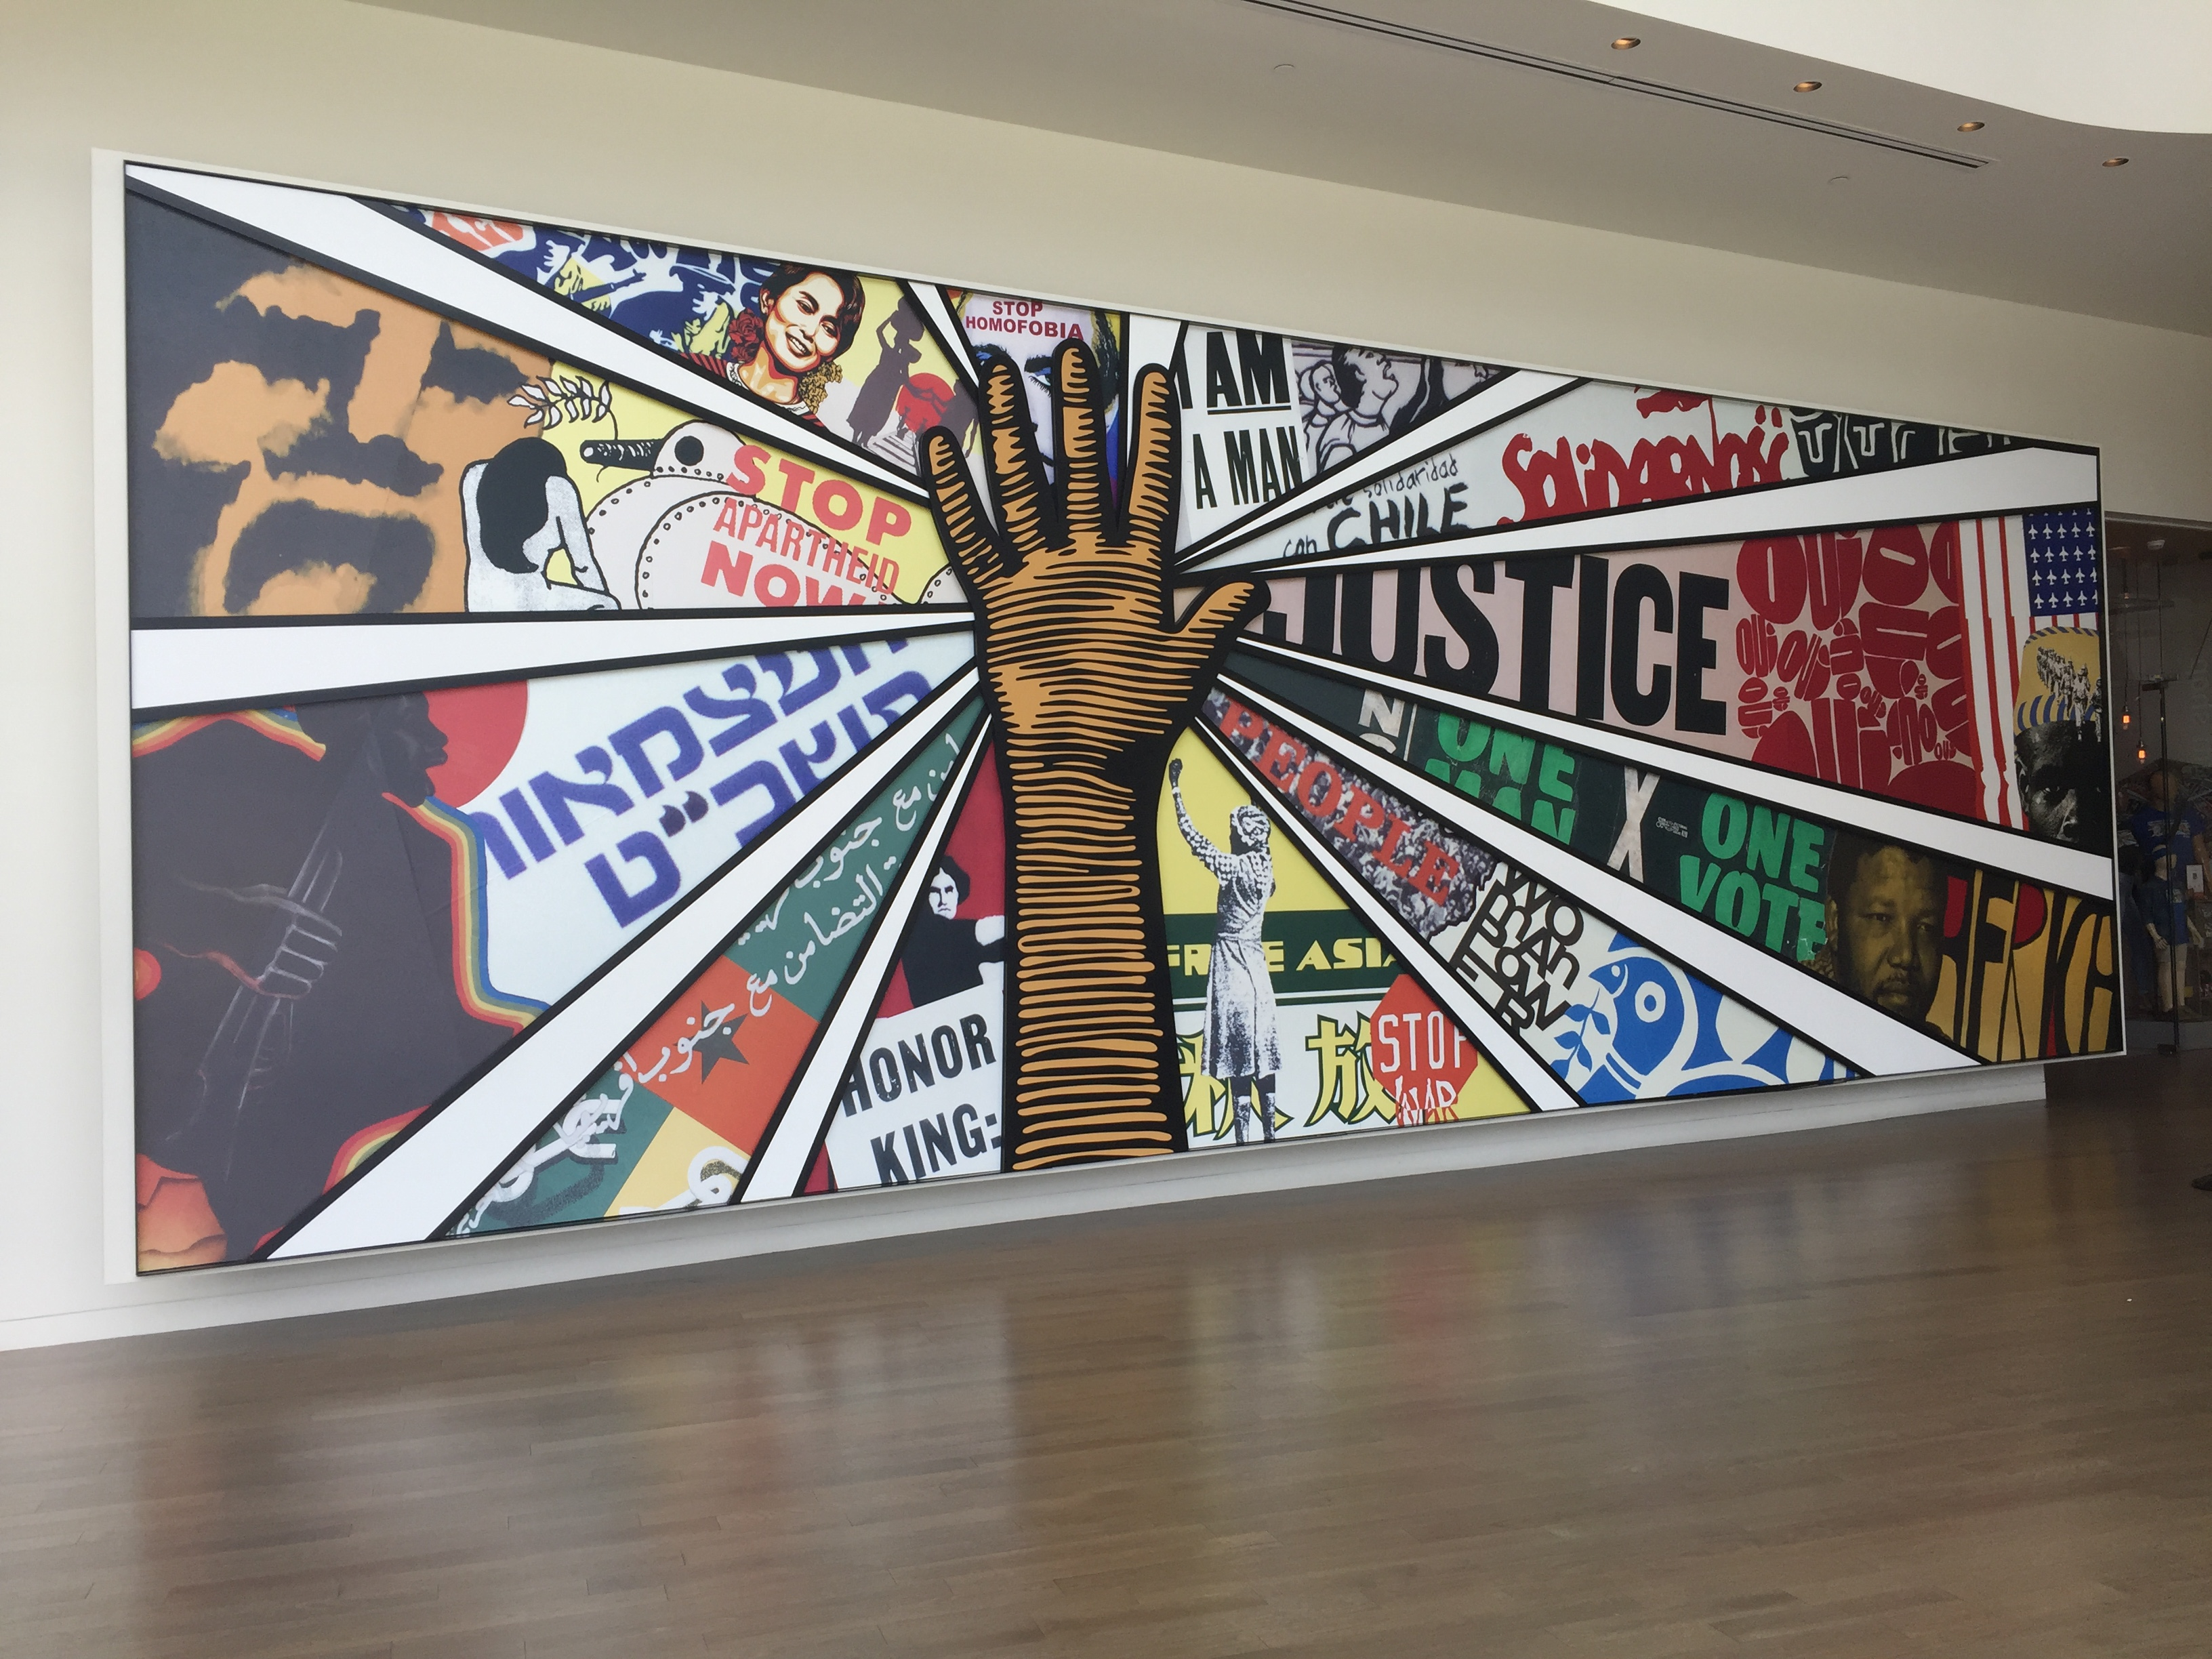 """Photo is of a painting that has a hand in the middle and segments of colorful images meeting that hand in the middle. One of the segments says """"Justice."""" Another says """"Stop Apartheid Now."""""""